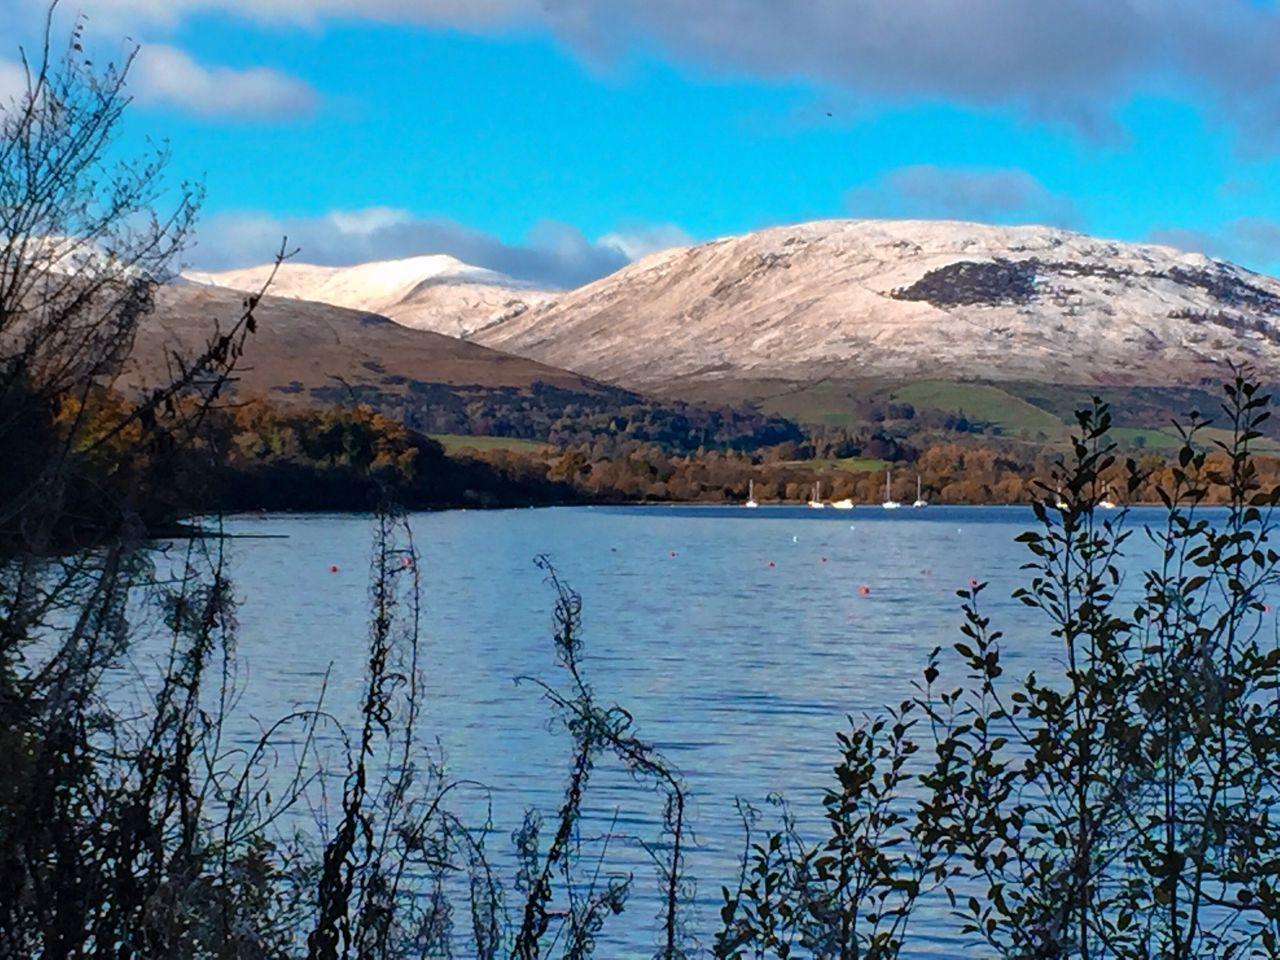 Mountain Range Snowcapped Mountain Landscape Water Beauty In Nature Horizon Over Land Idyllic Weather LochLomond Outdoors Tranquil Scene Scenics No People Rural Scene Growth Majestic Nature